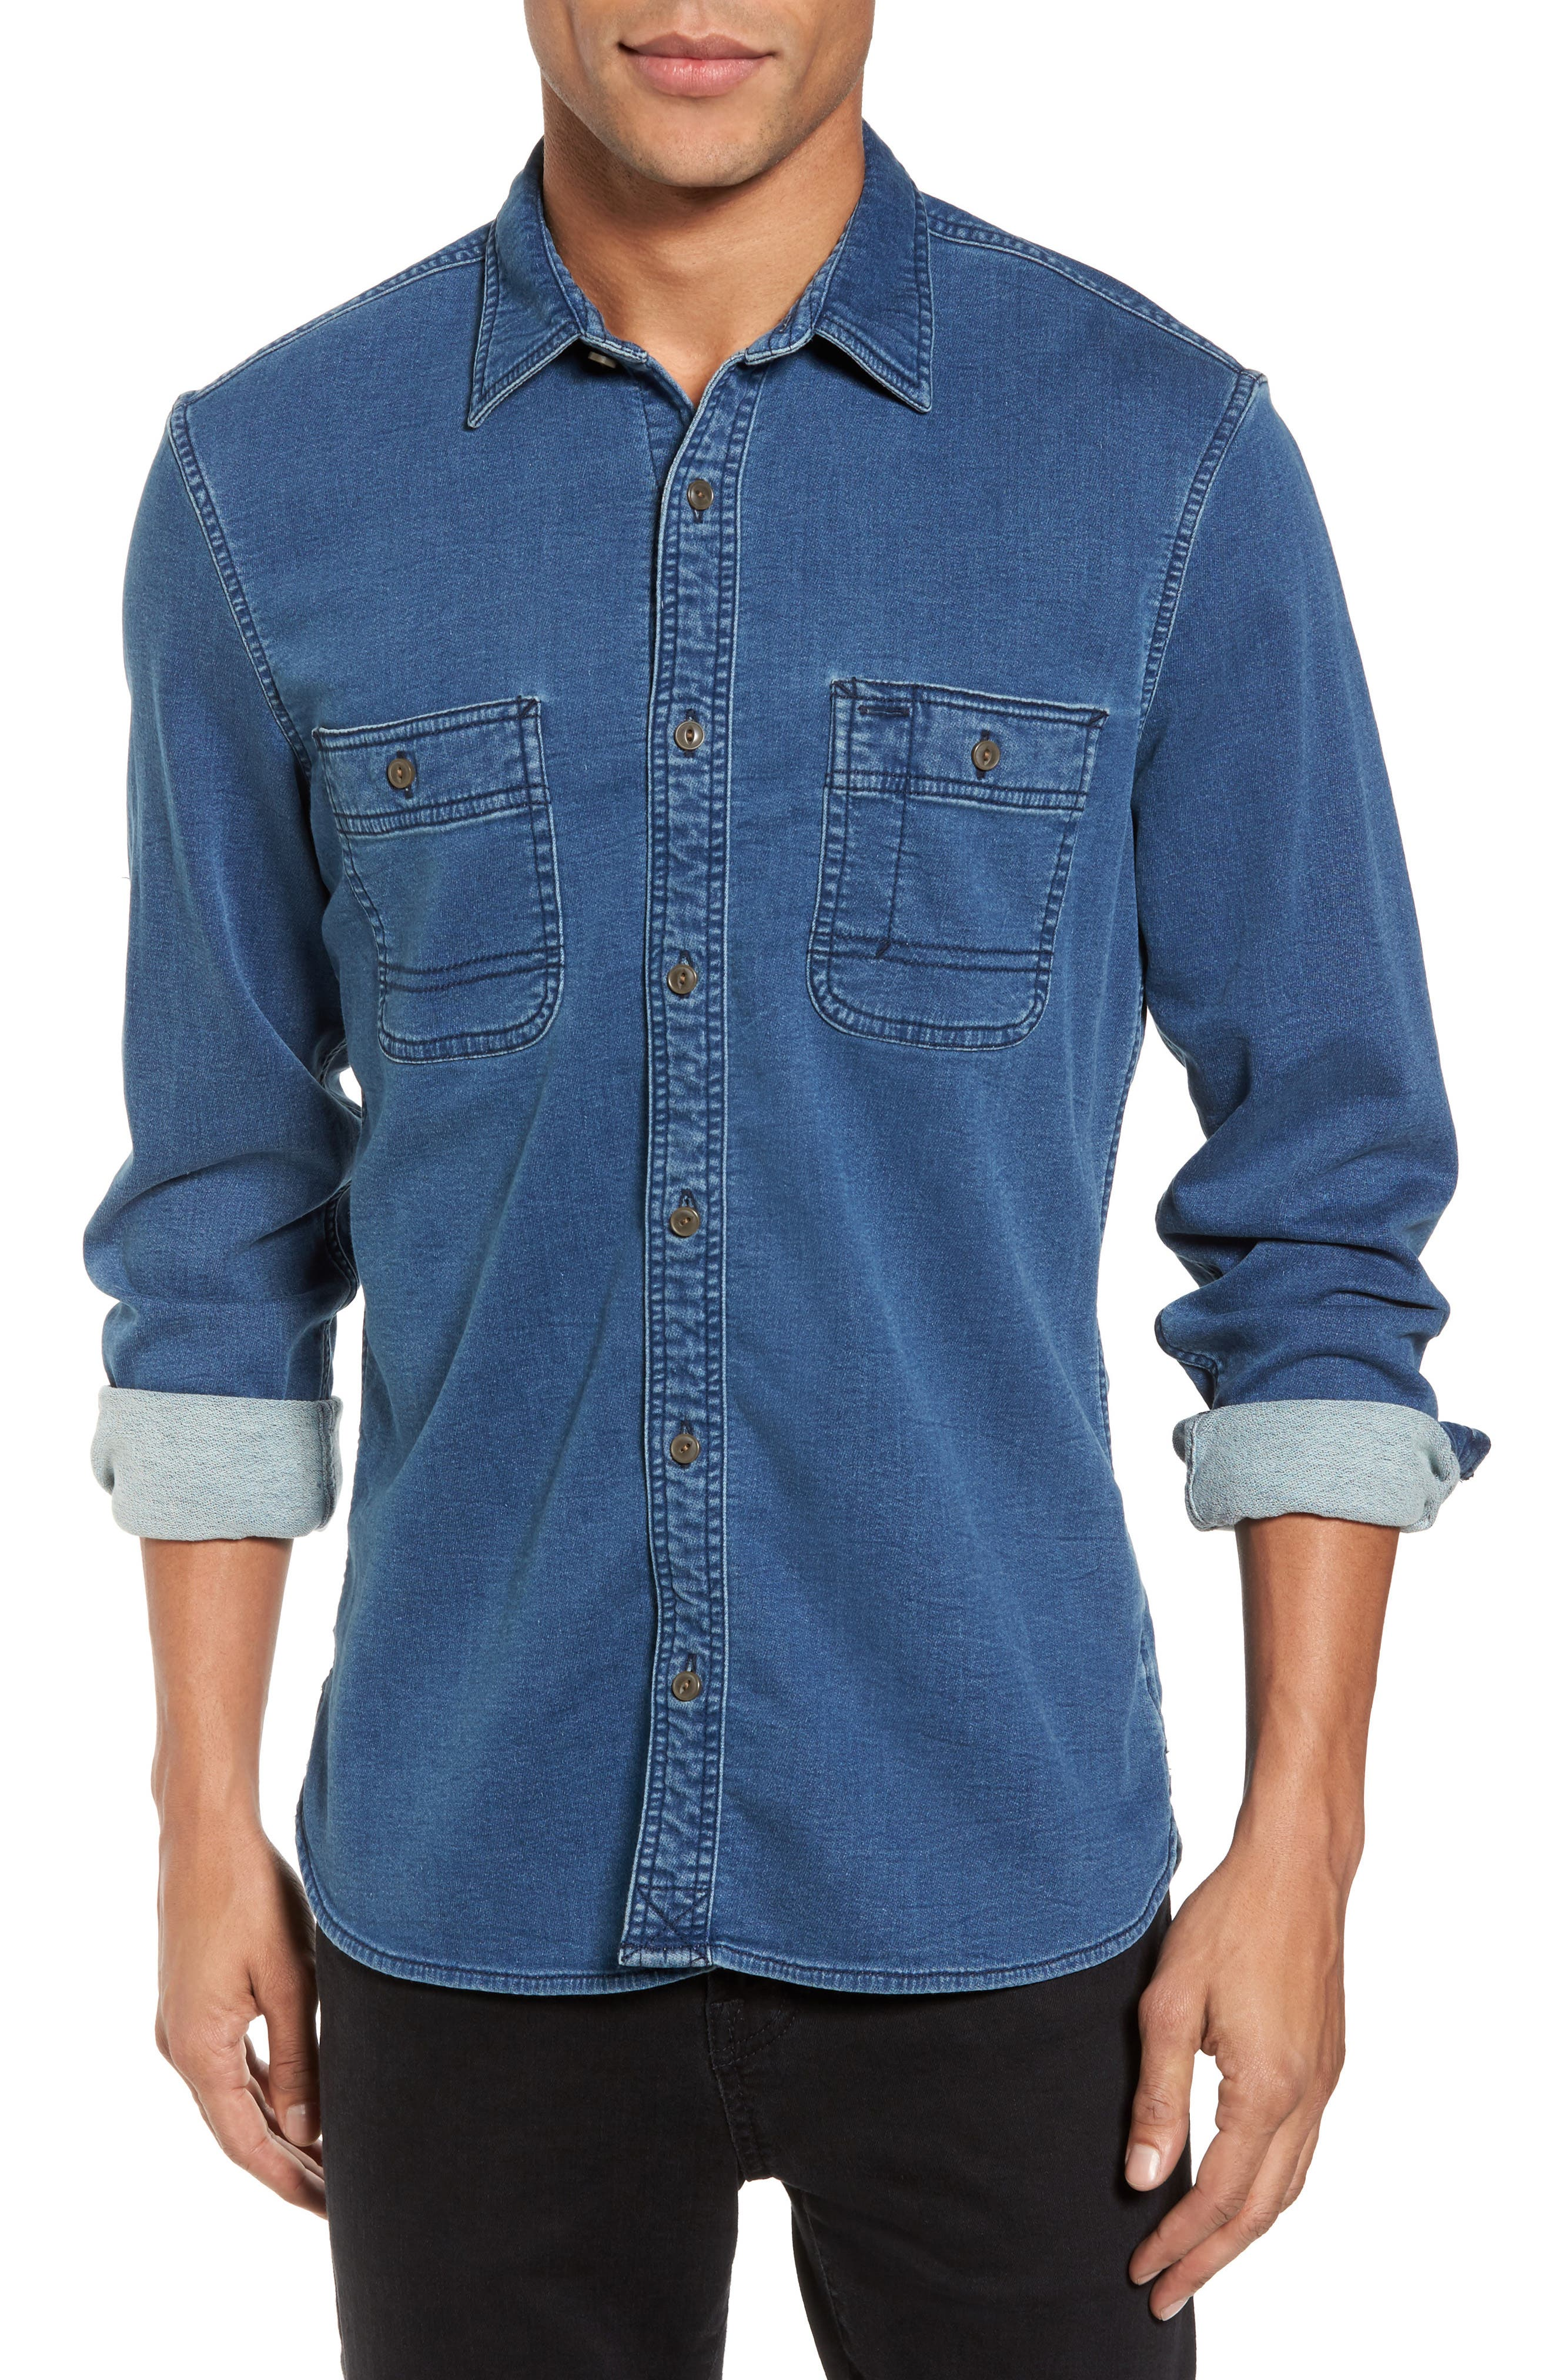 Casual Button-Down Shirts Denim on Denim Trend for Men | Nordstrom